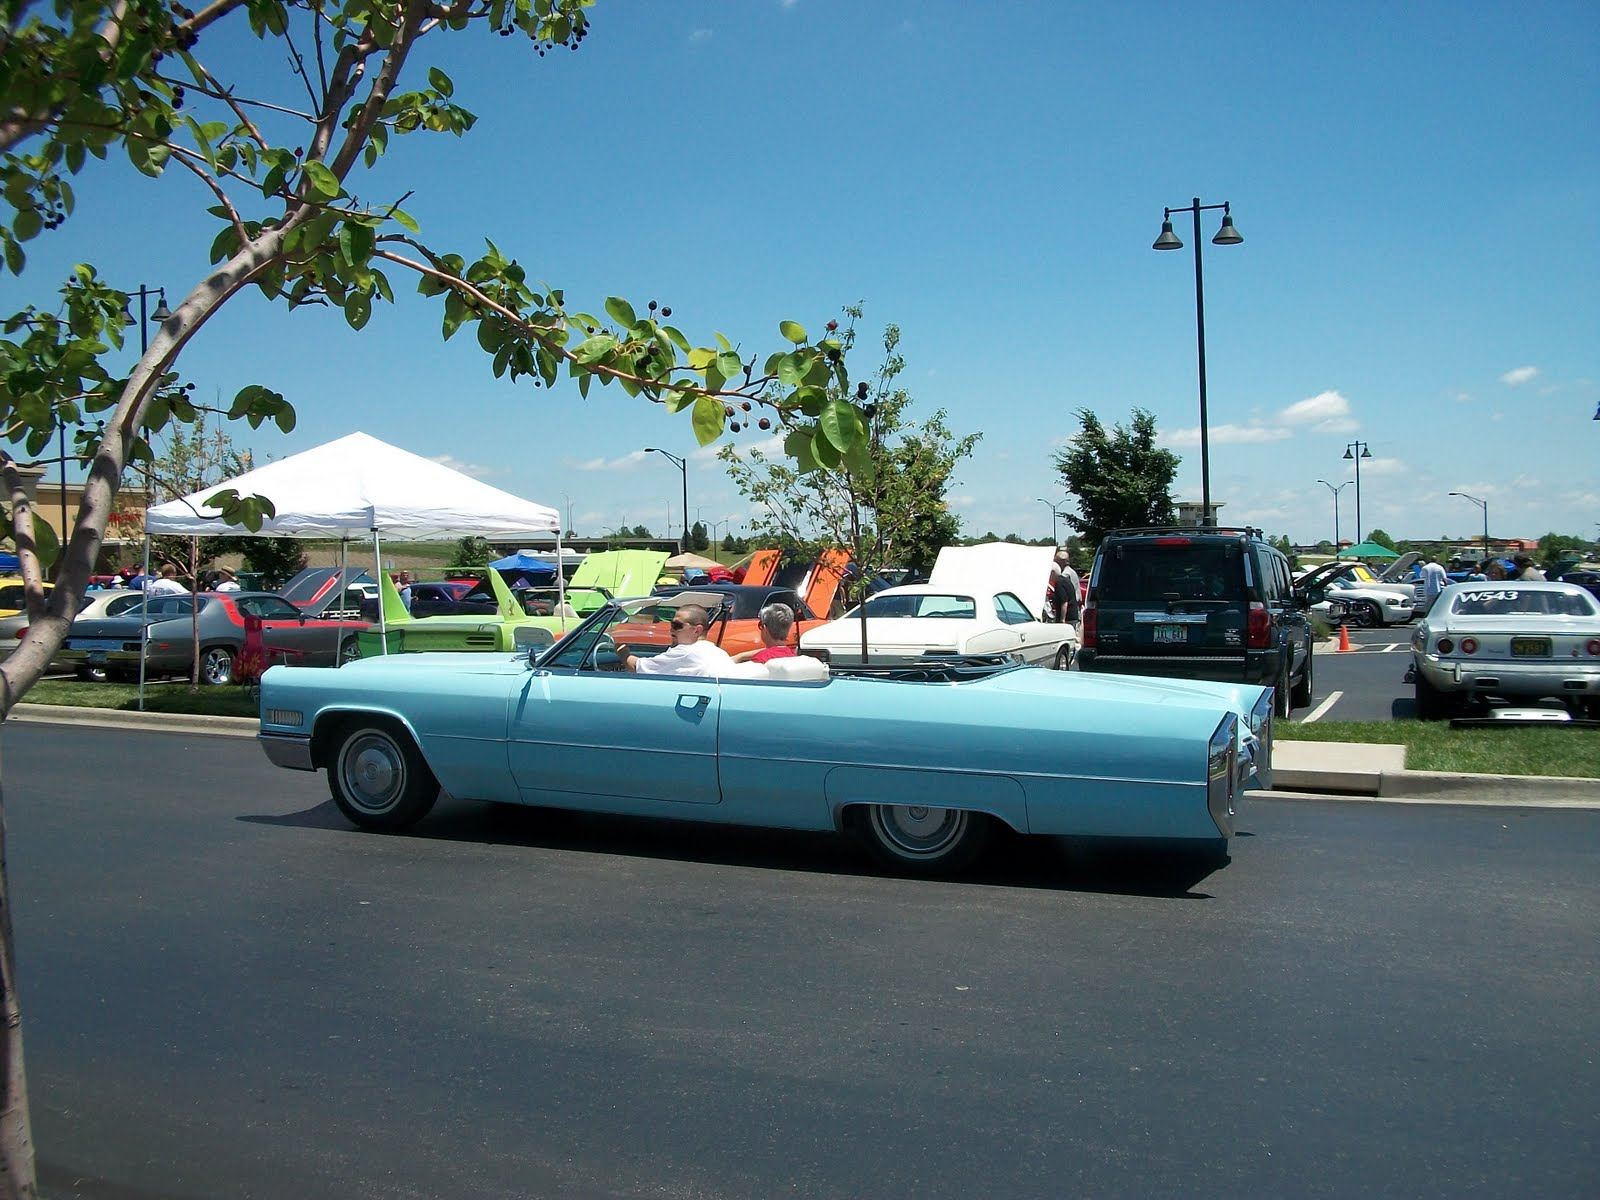 South Kansas City Observer Antique And Classic Cars Abound On KC Roads - Winters car show